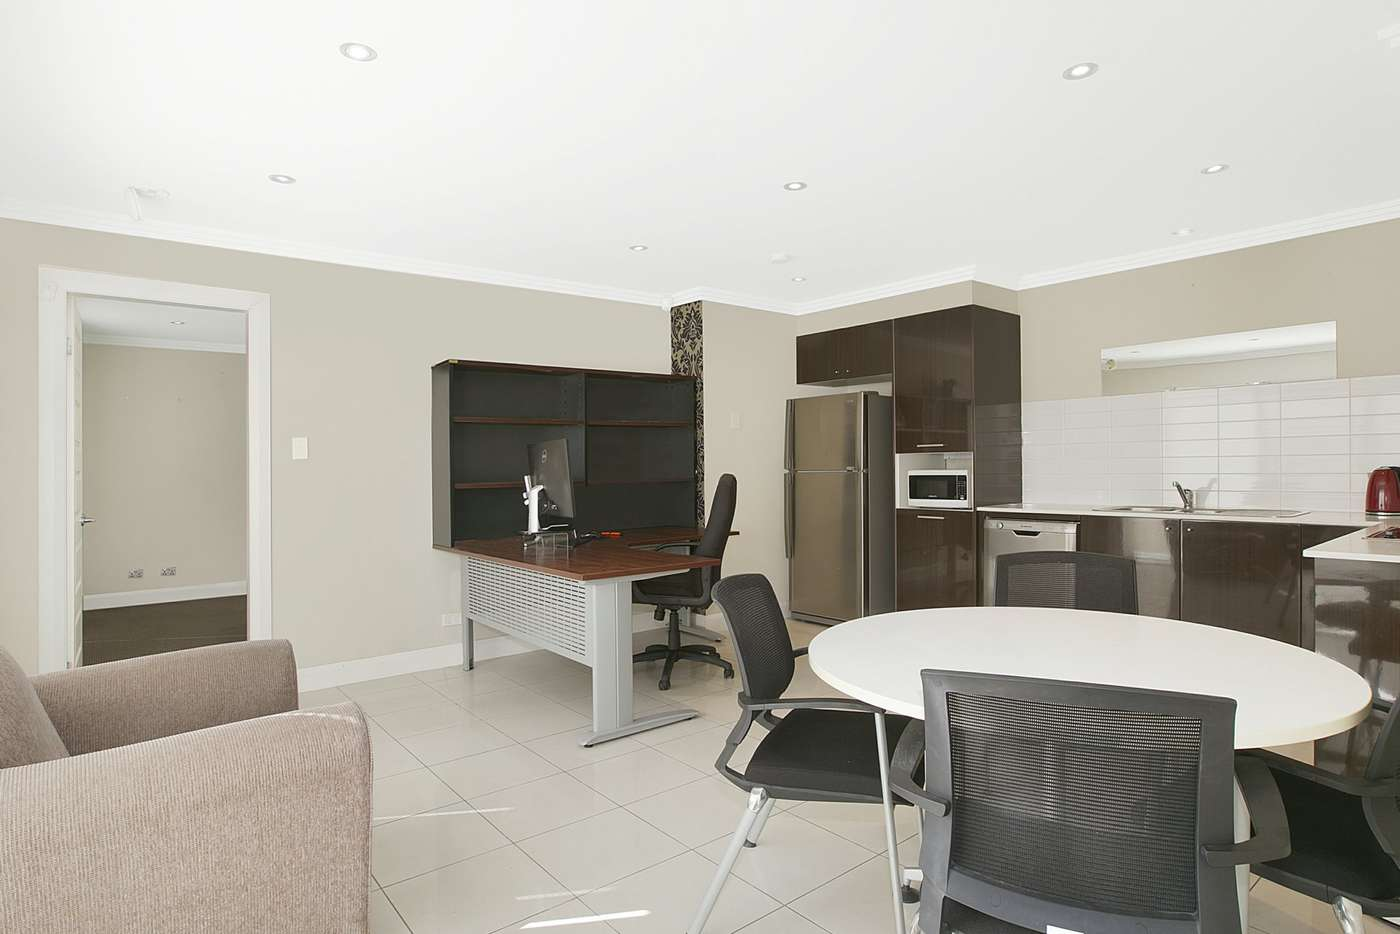 Main view of Homely house listing, 6 Stipa Lane, Mount Annan NSW 2567